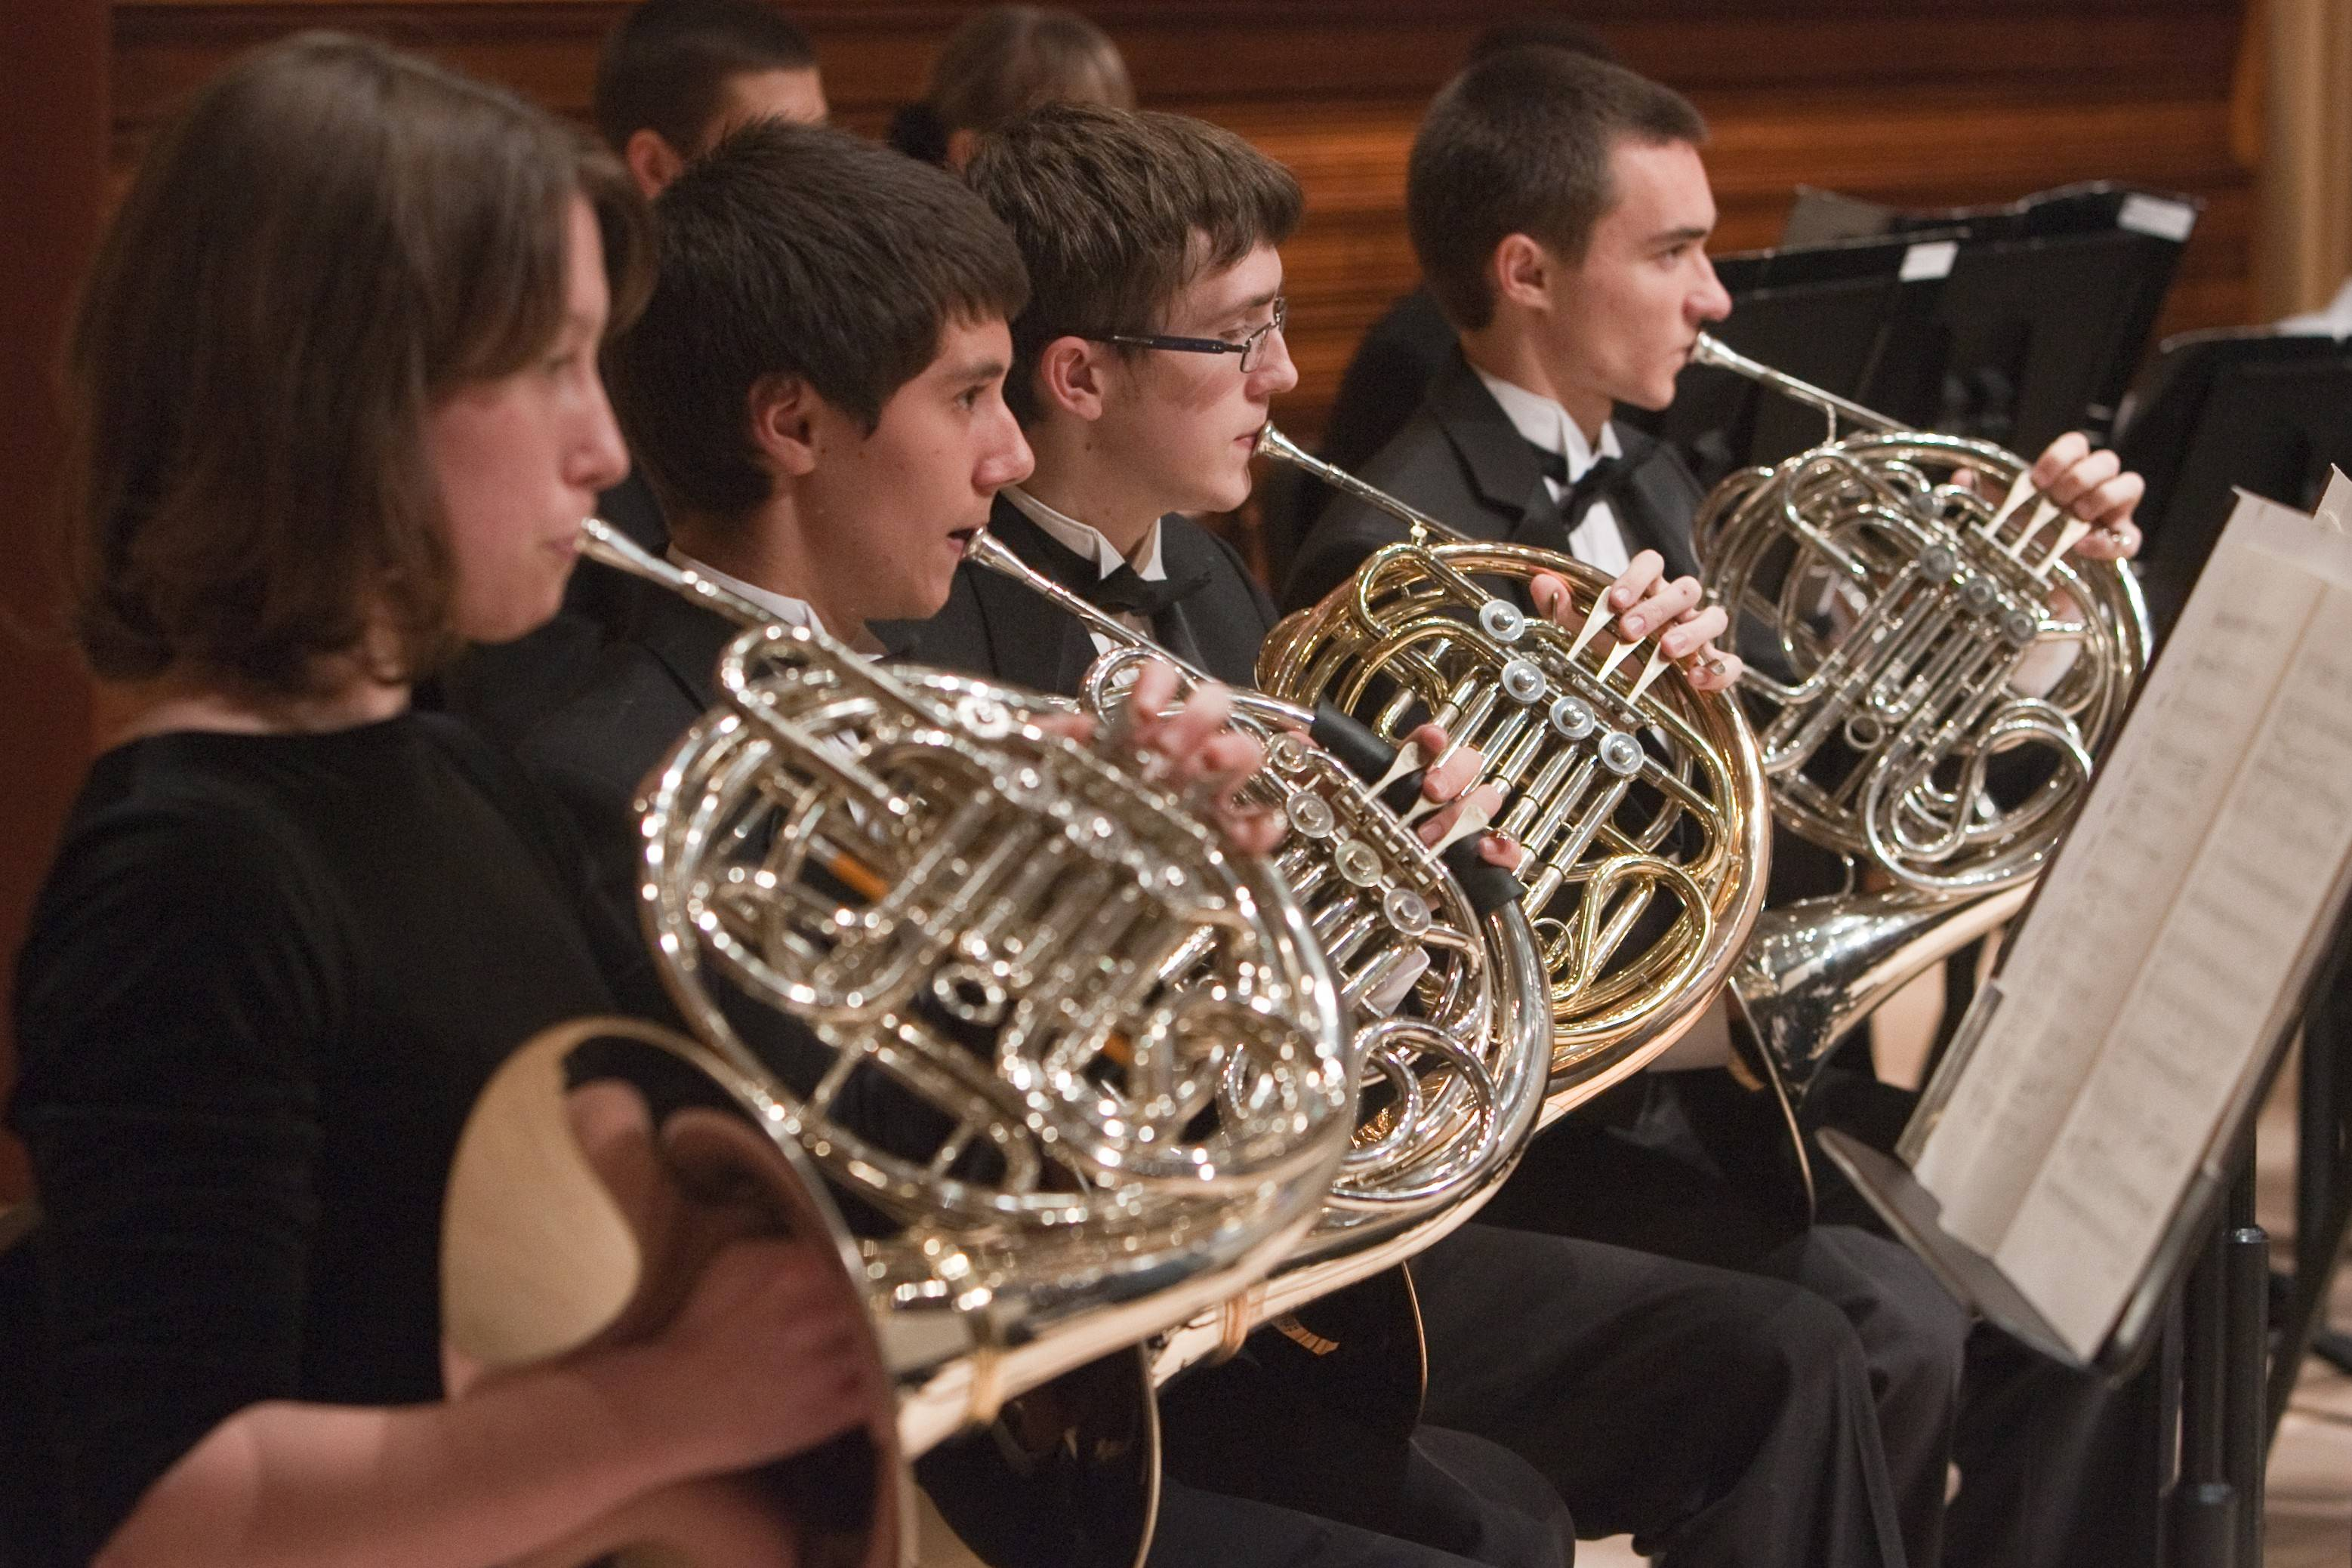 Playing the French horn with the Youth Symphony of DuPage are, from left, Sydney Lundell, Eddie Sailer, Matthew Nelson and Harris Jordan. The group is celebrating its 50th anniversary this year.